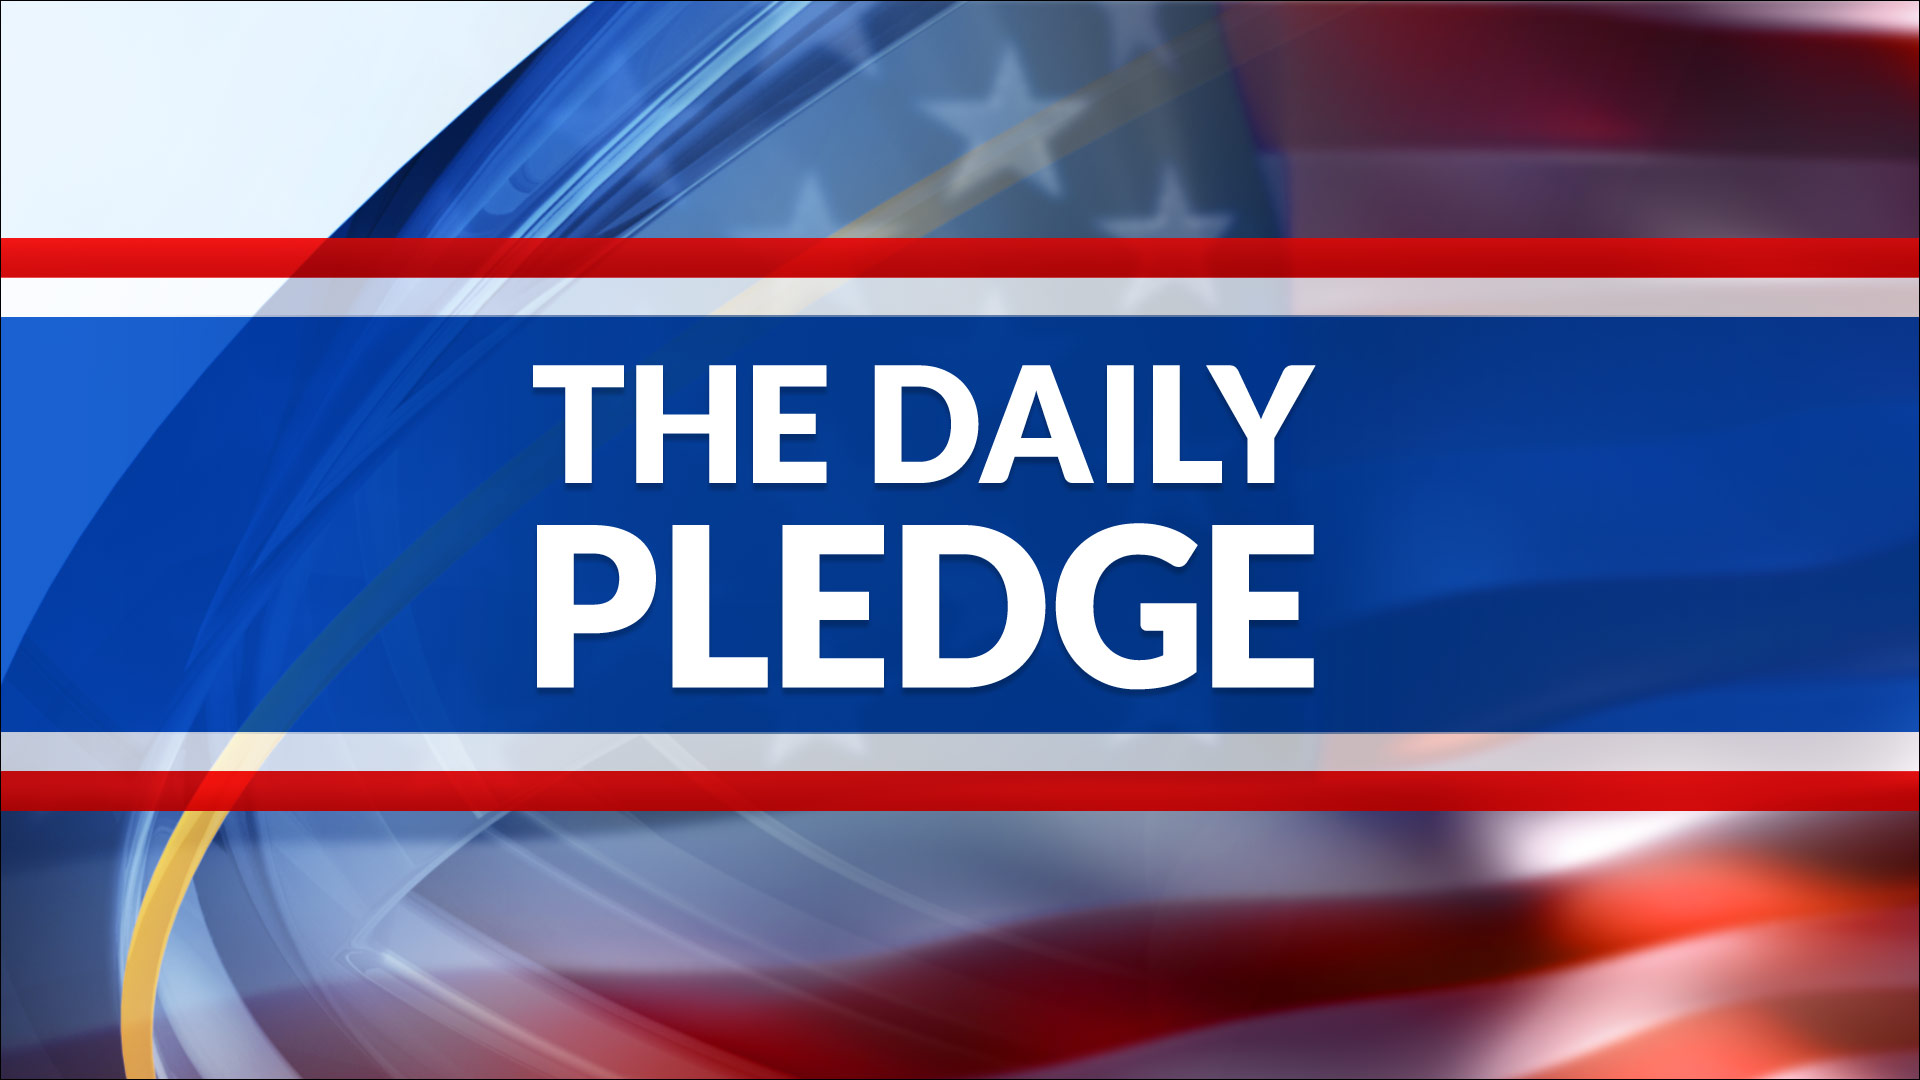 The Daily Pledge